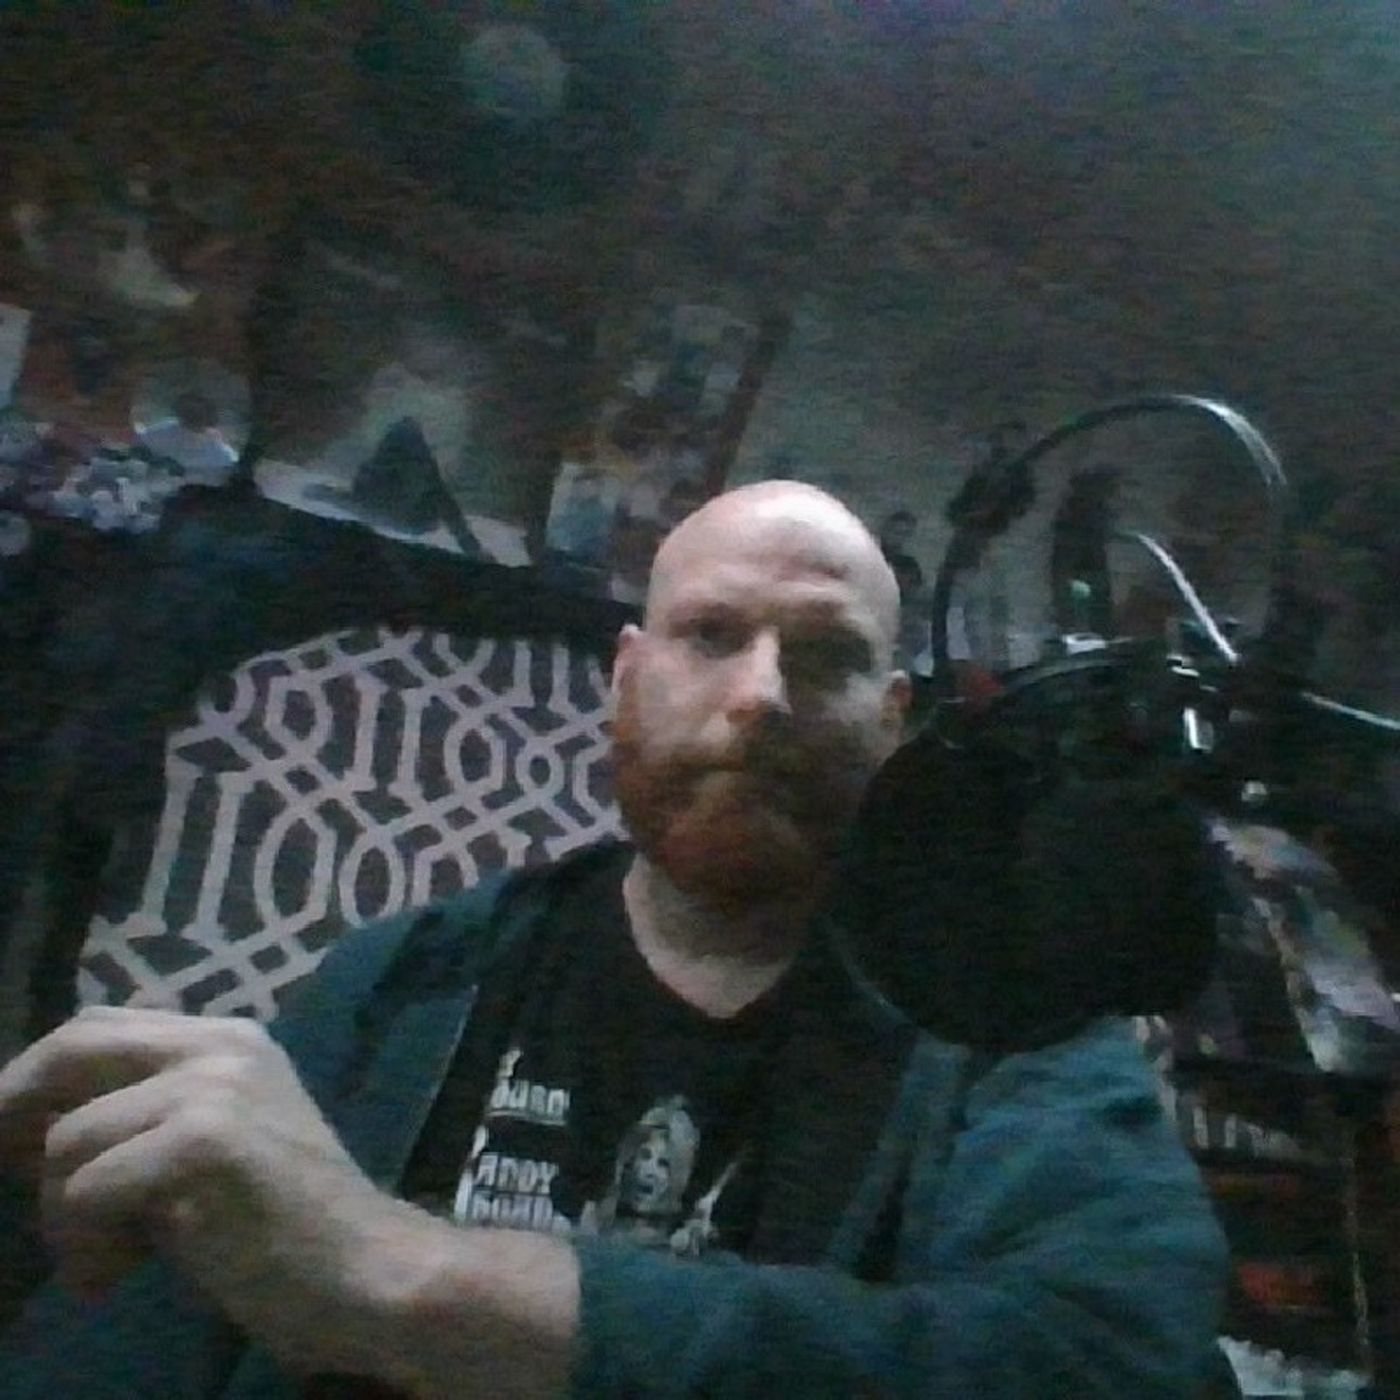 Episode 152 - On The Fly Live Goth and Darkwave. segment 1